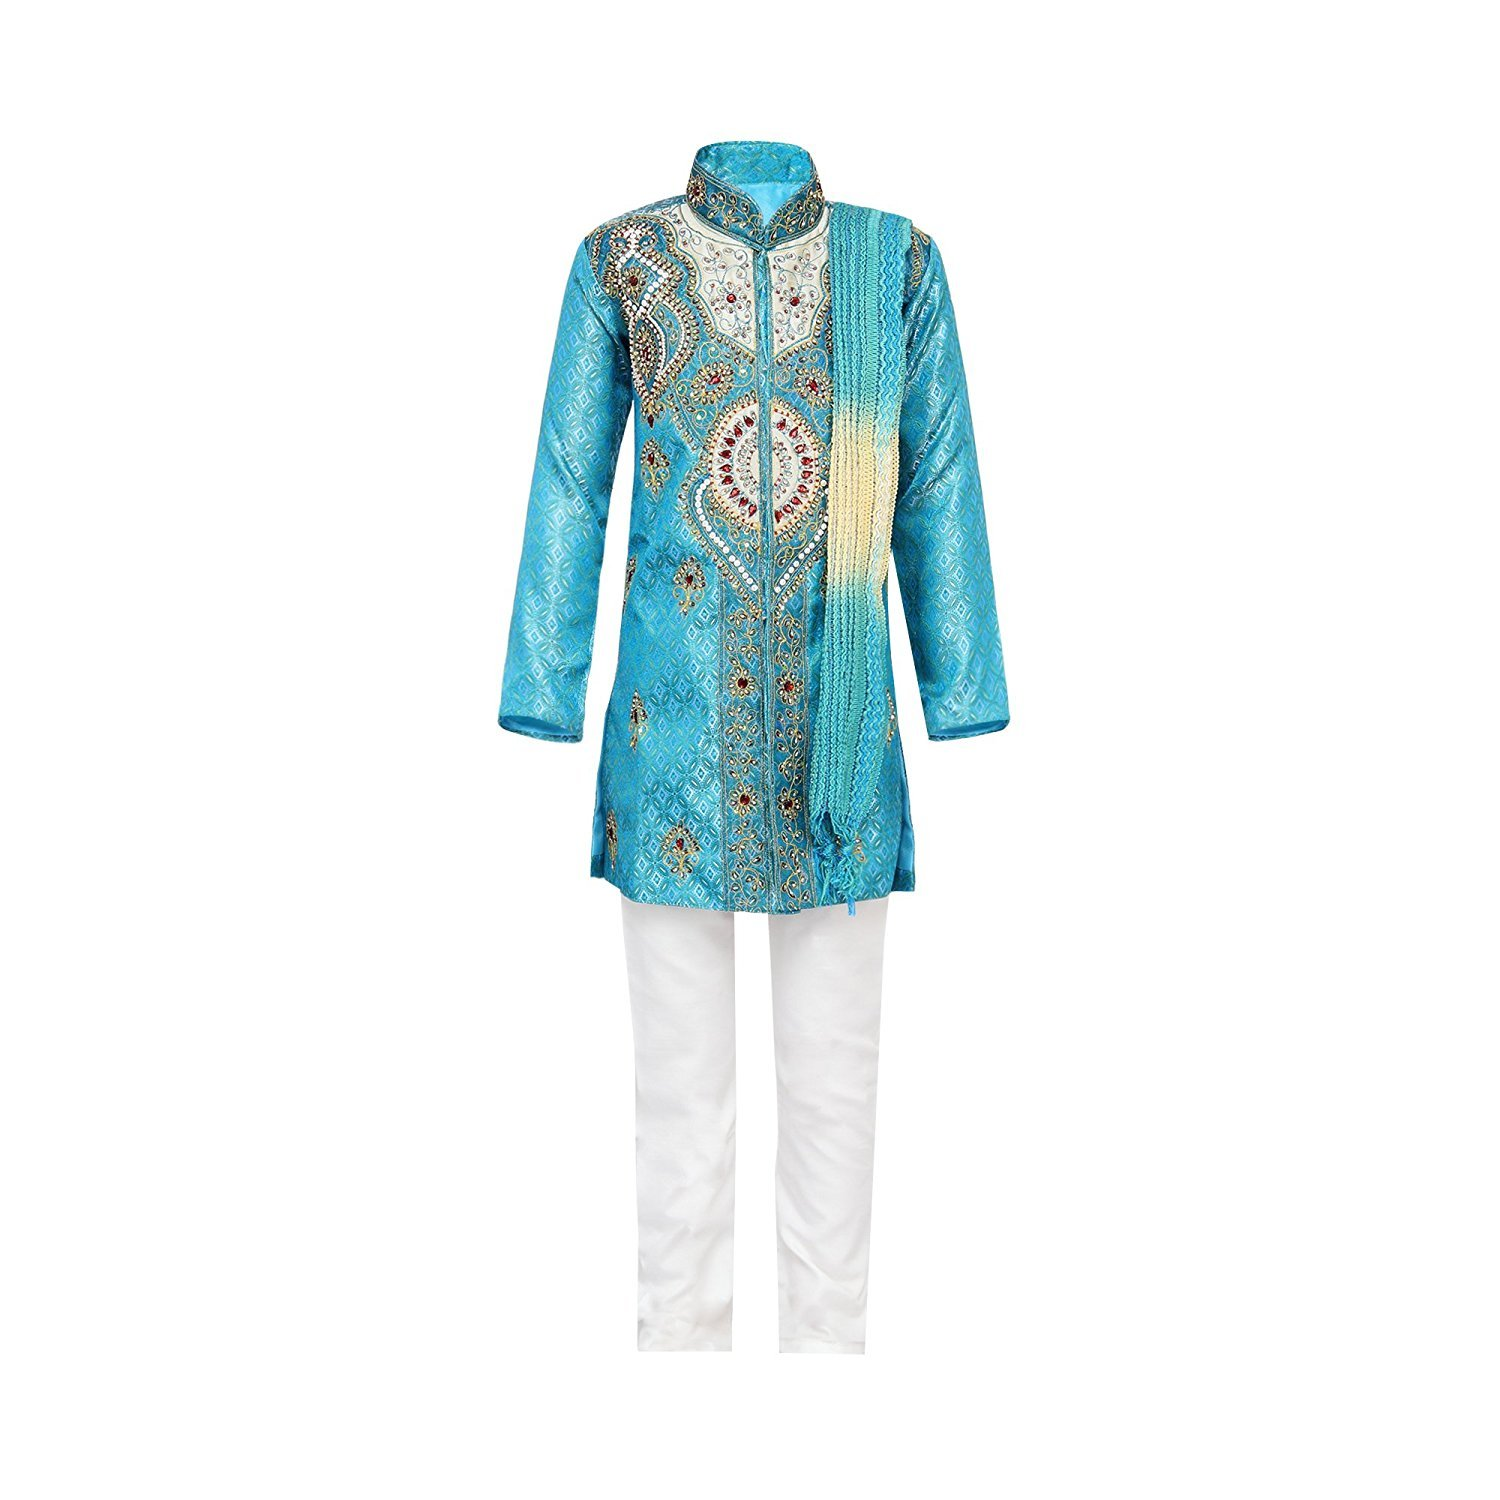 Ahhaaaa Kids Ethnic Indian Festive and Party Wear Sherwani and Breeches With Dupatta Set For Boys Blue 9-10 Years by Ahhaaaa